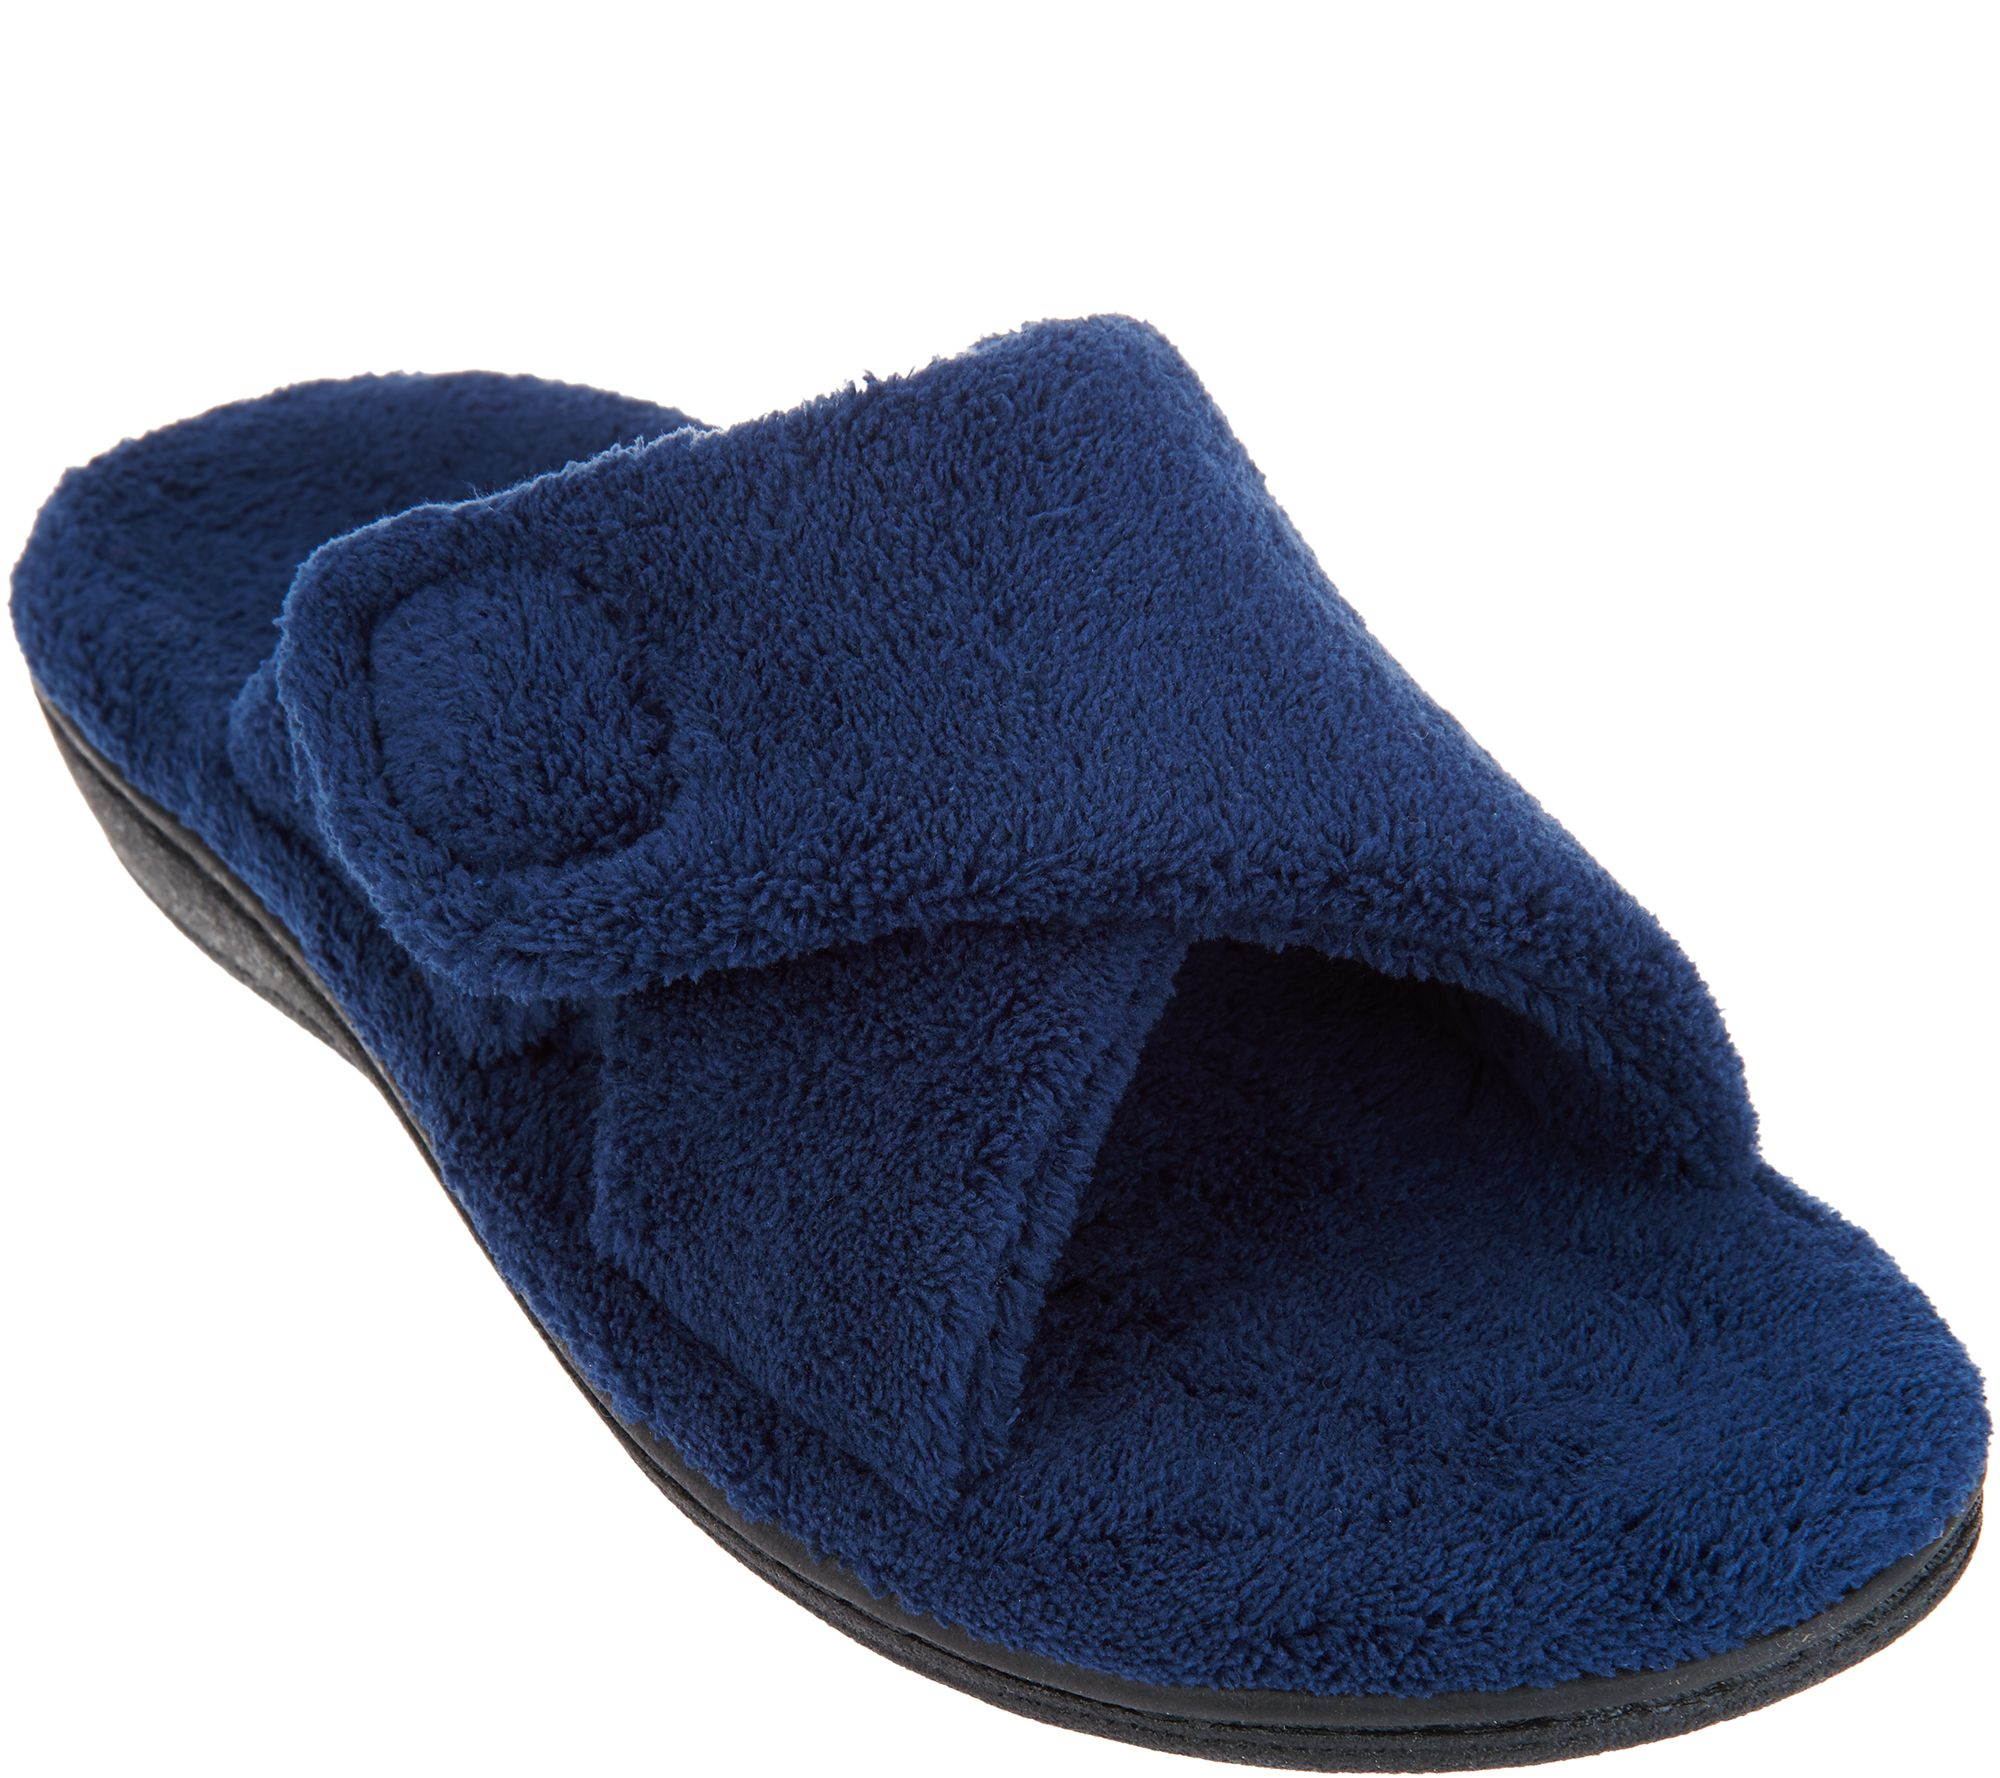 d84ed52acd1ab Vionic Adjustable Strap Slippers - Relax - Page 1 — QVC.com